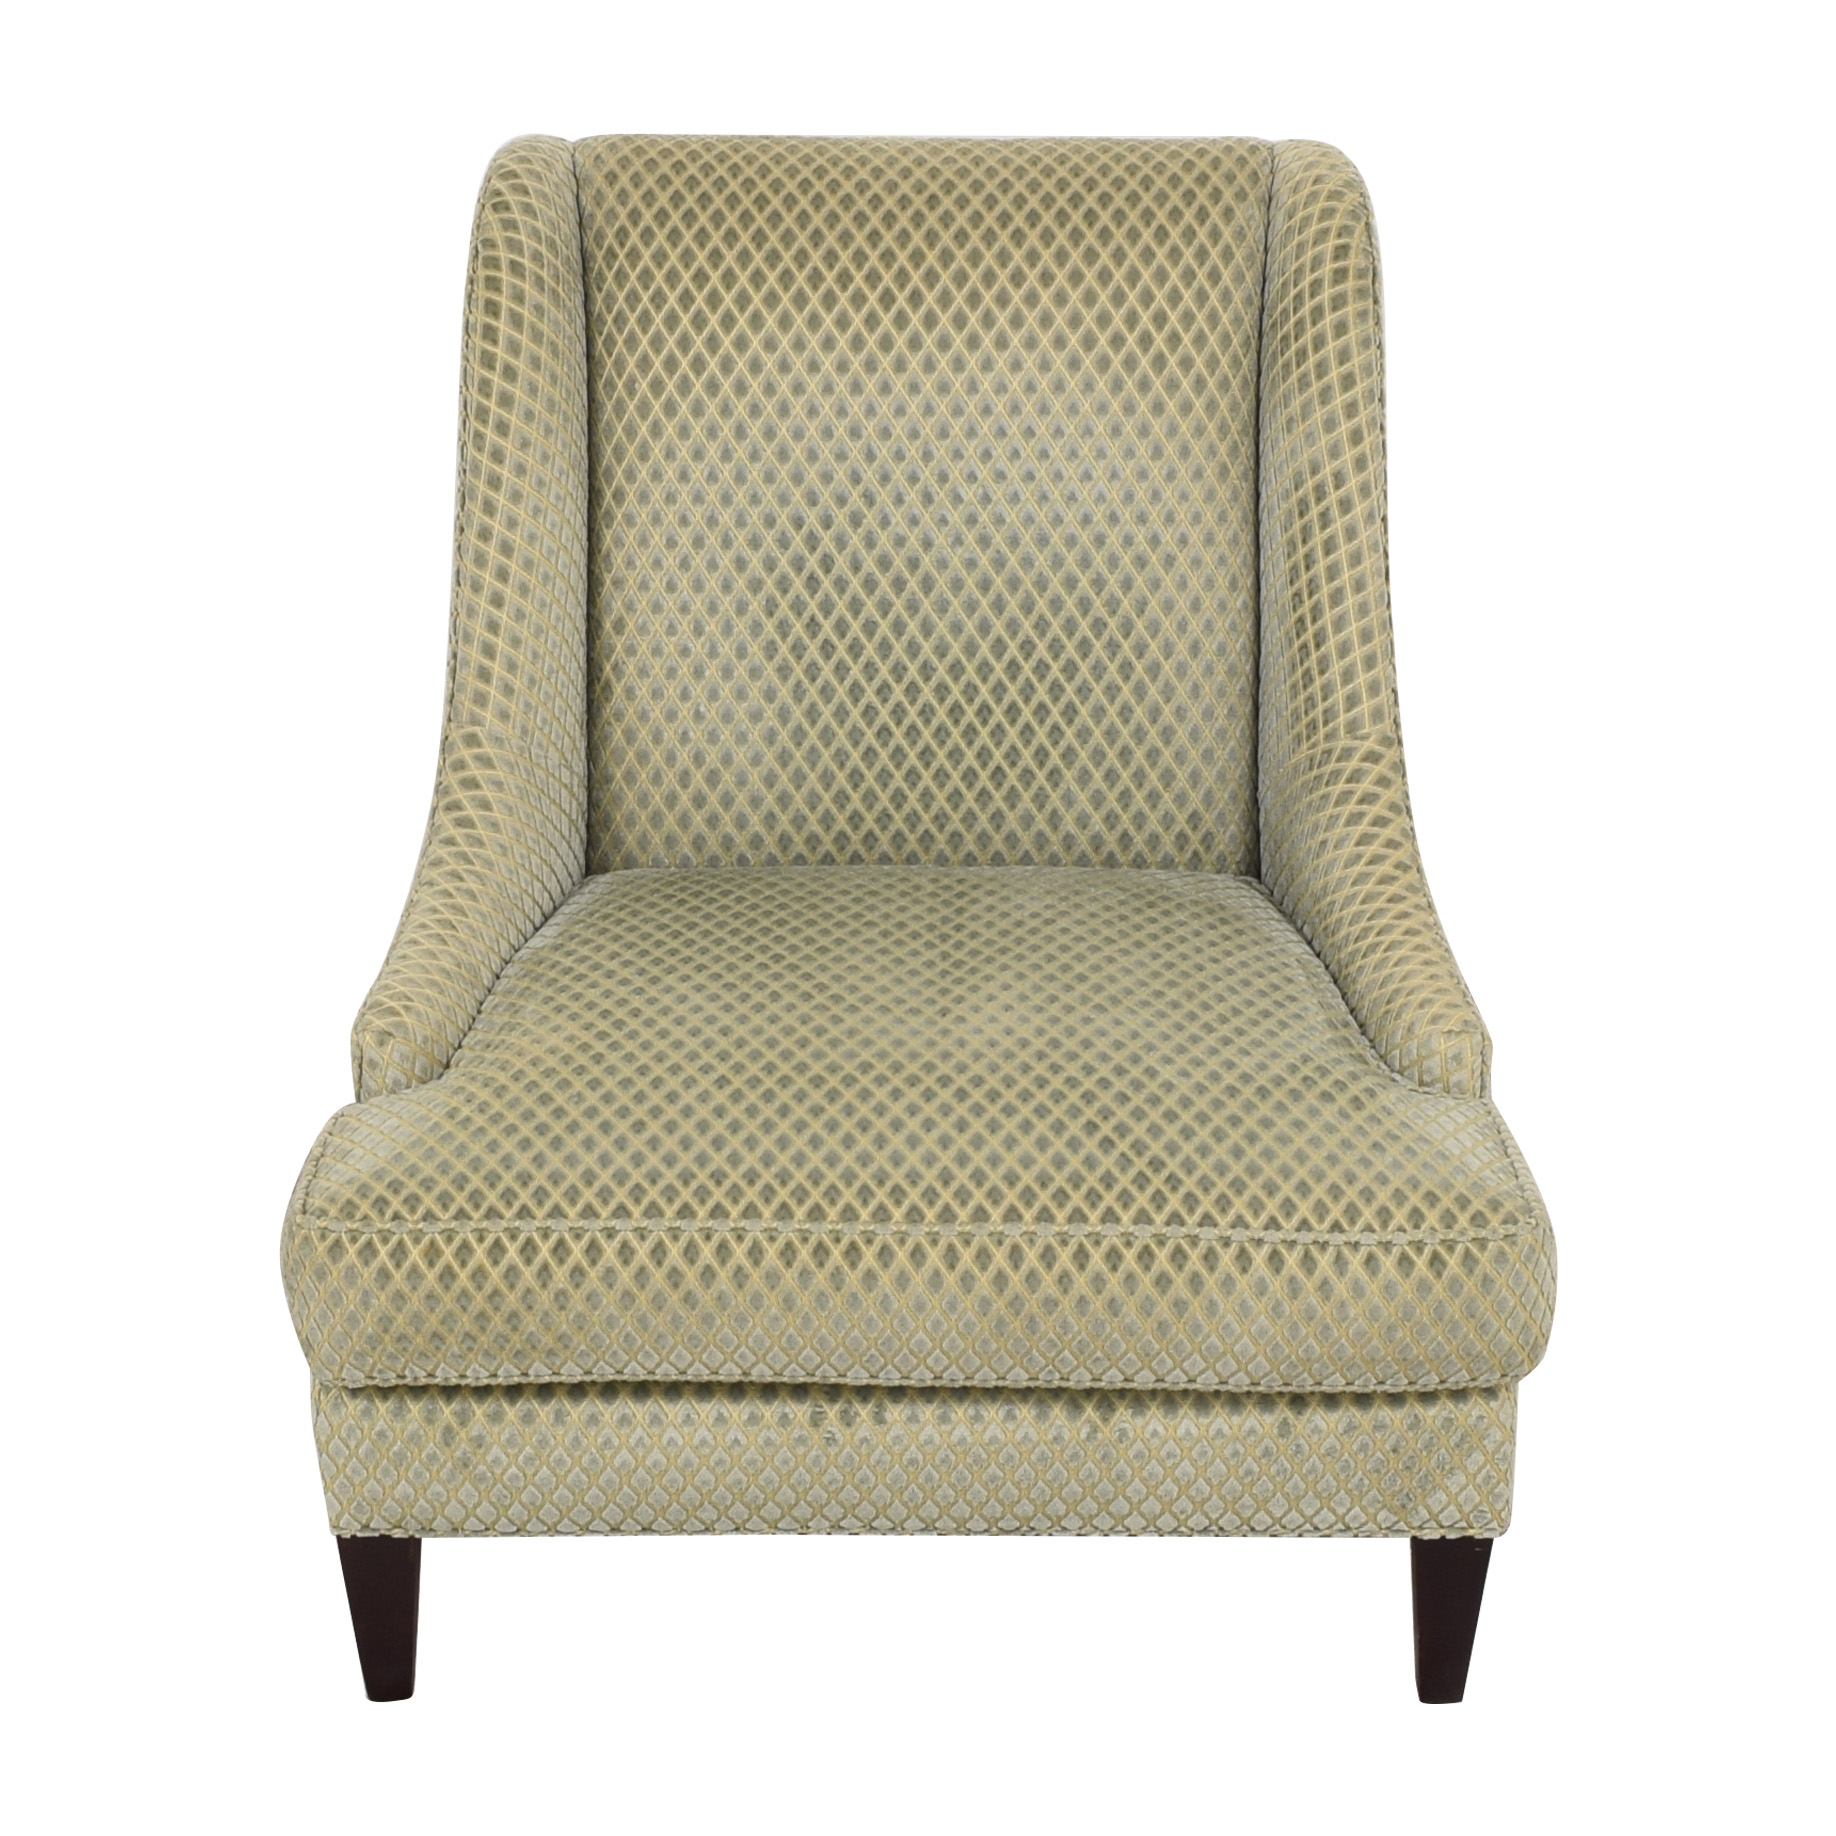 Hickory White Hickory White Armless Chair Accent Chairs